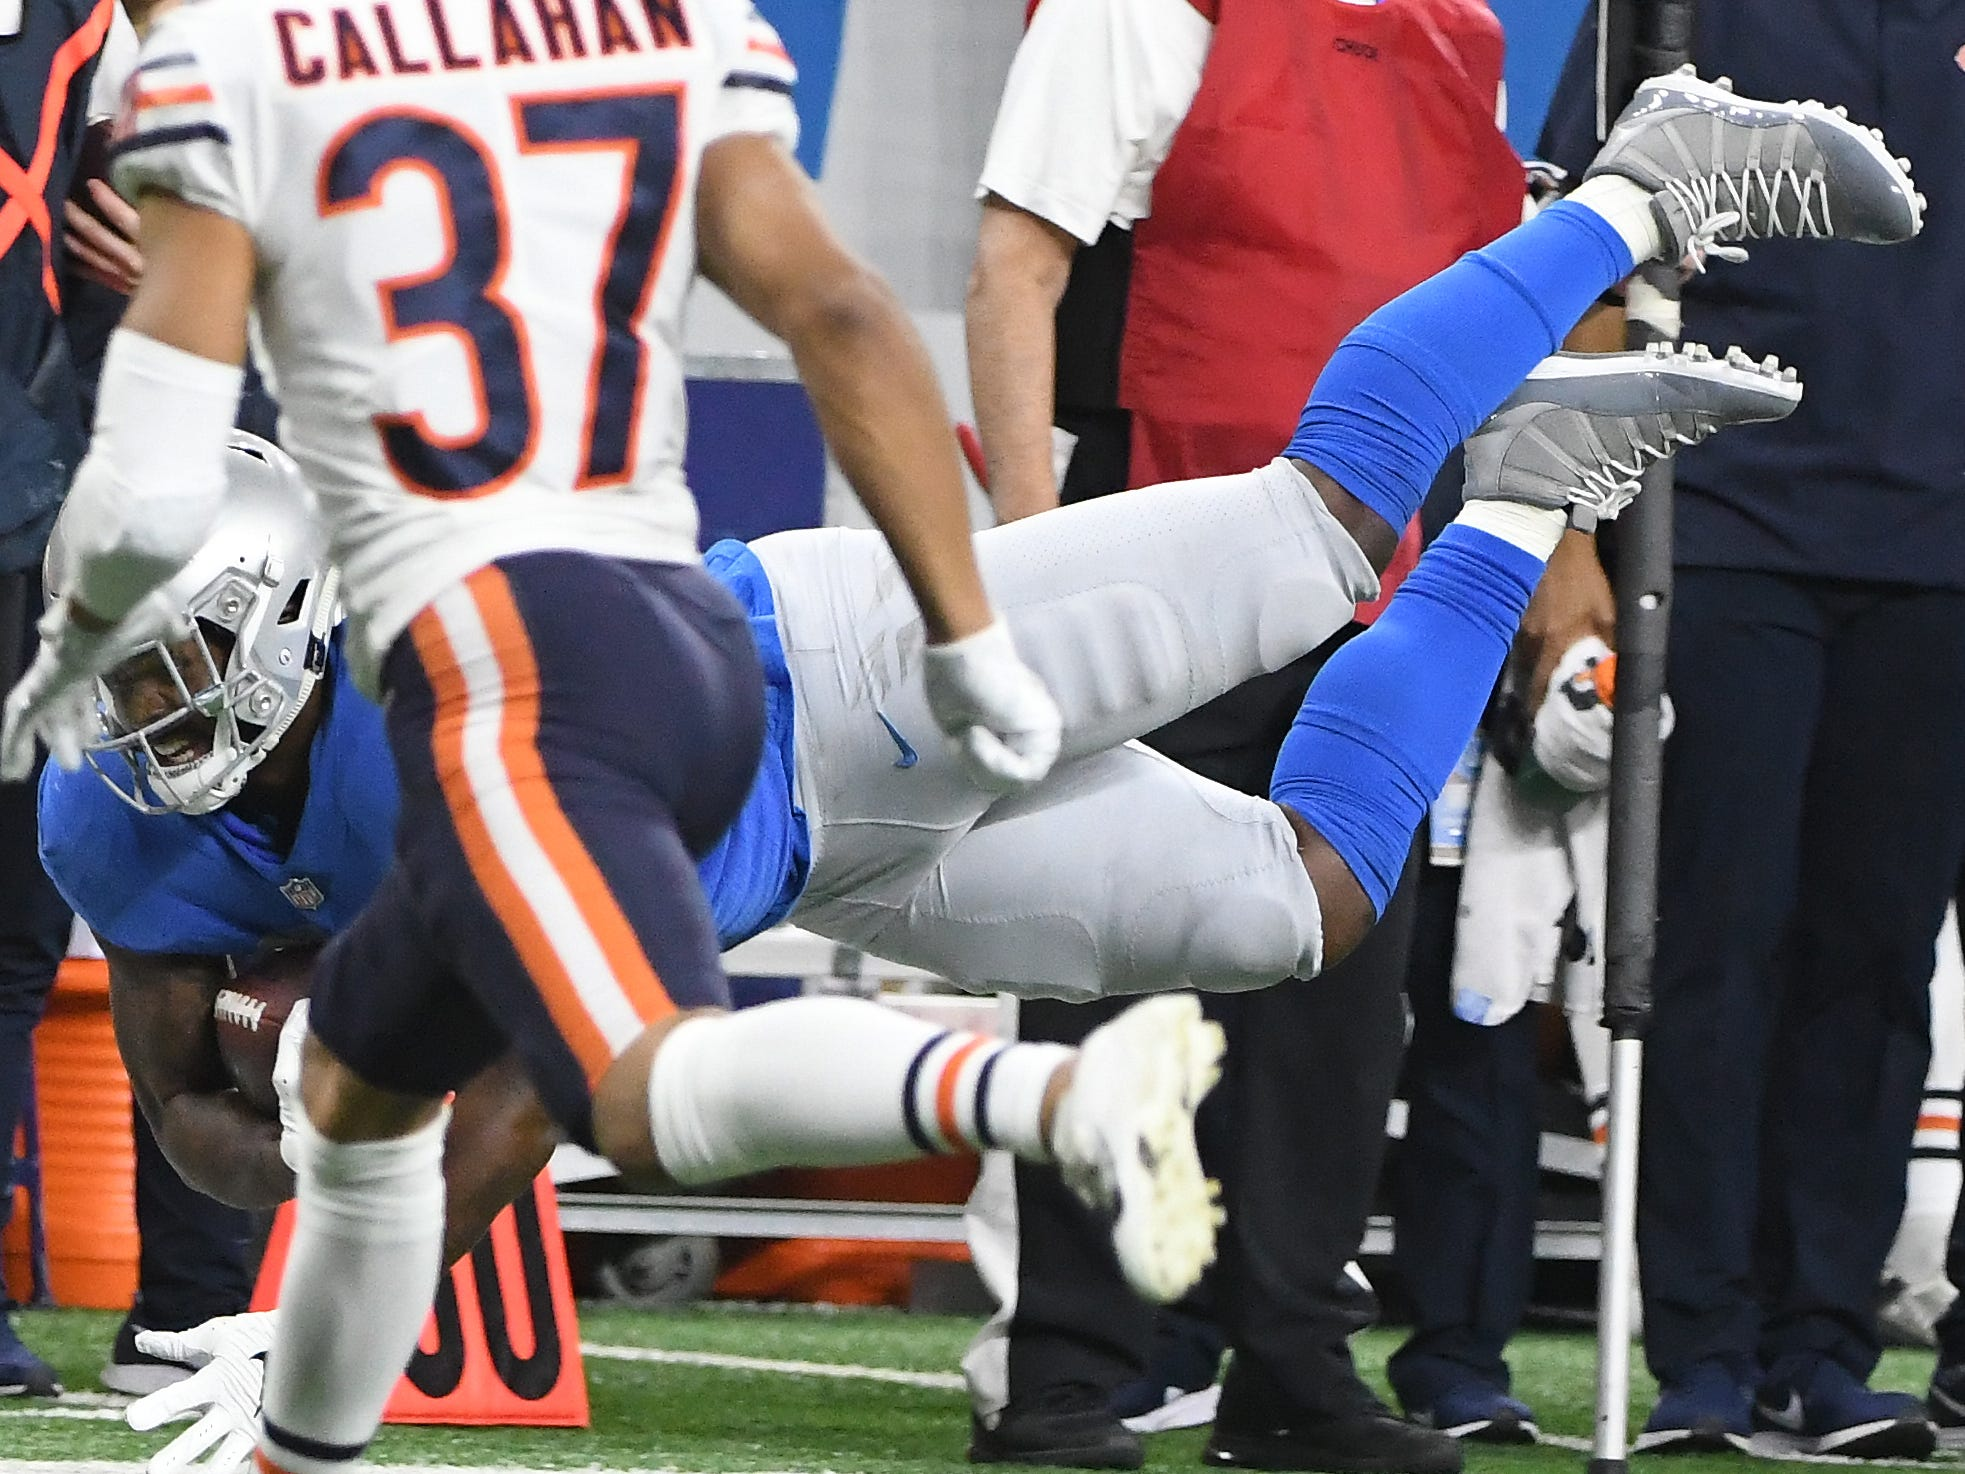 Lions' Michael Roberts dives for extra yardage along the sidelines with Bears' Bryce Callahan defending in the first quarter.